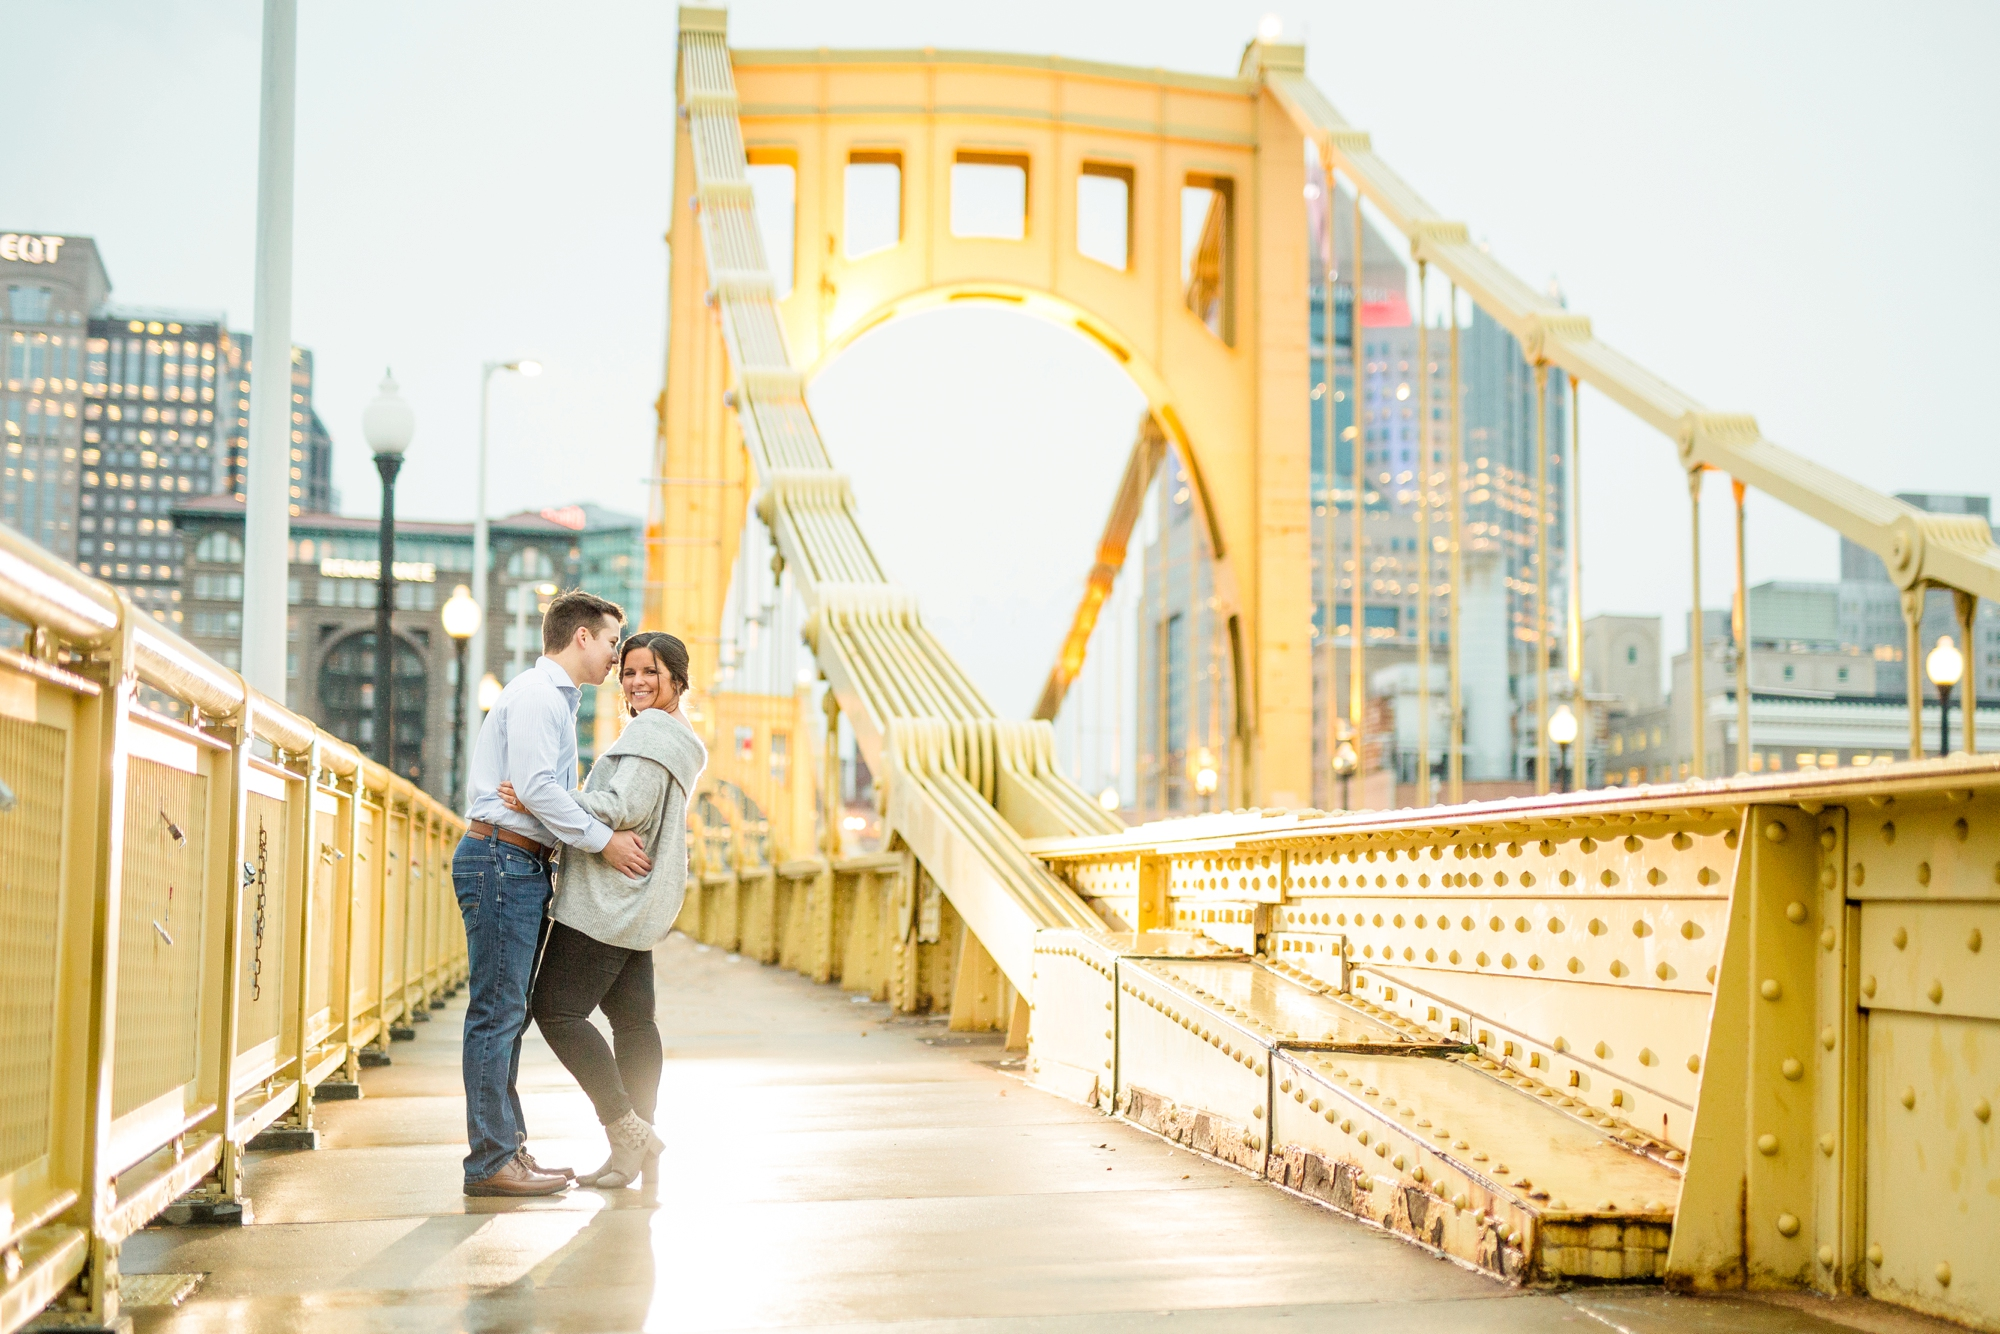 pittsburgh wedding photographer, pittsburgh engagement photos, best spot in pittsburgh for photo shoot, highland park engagement pictures, allegheny commons park engagement photos, mexican war street